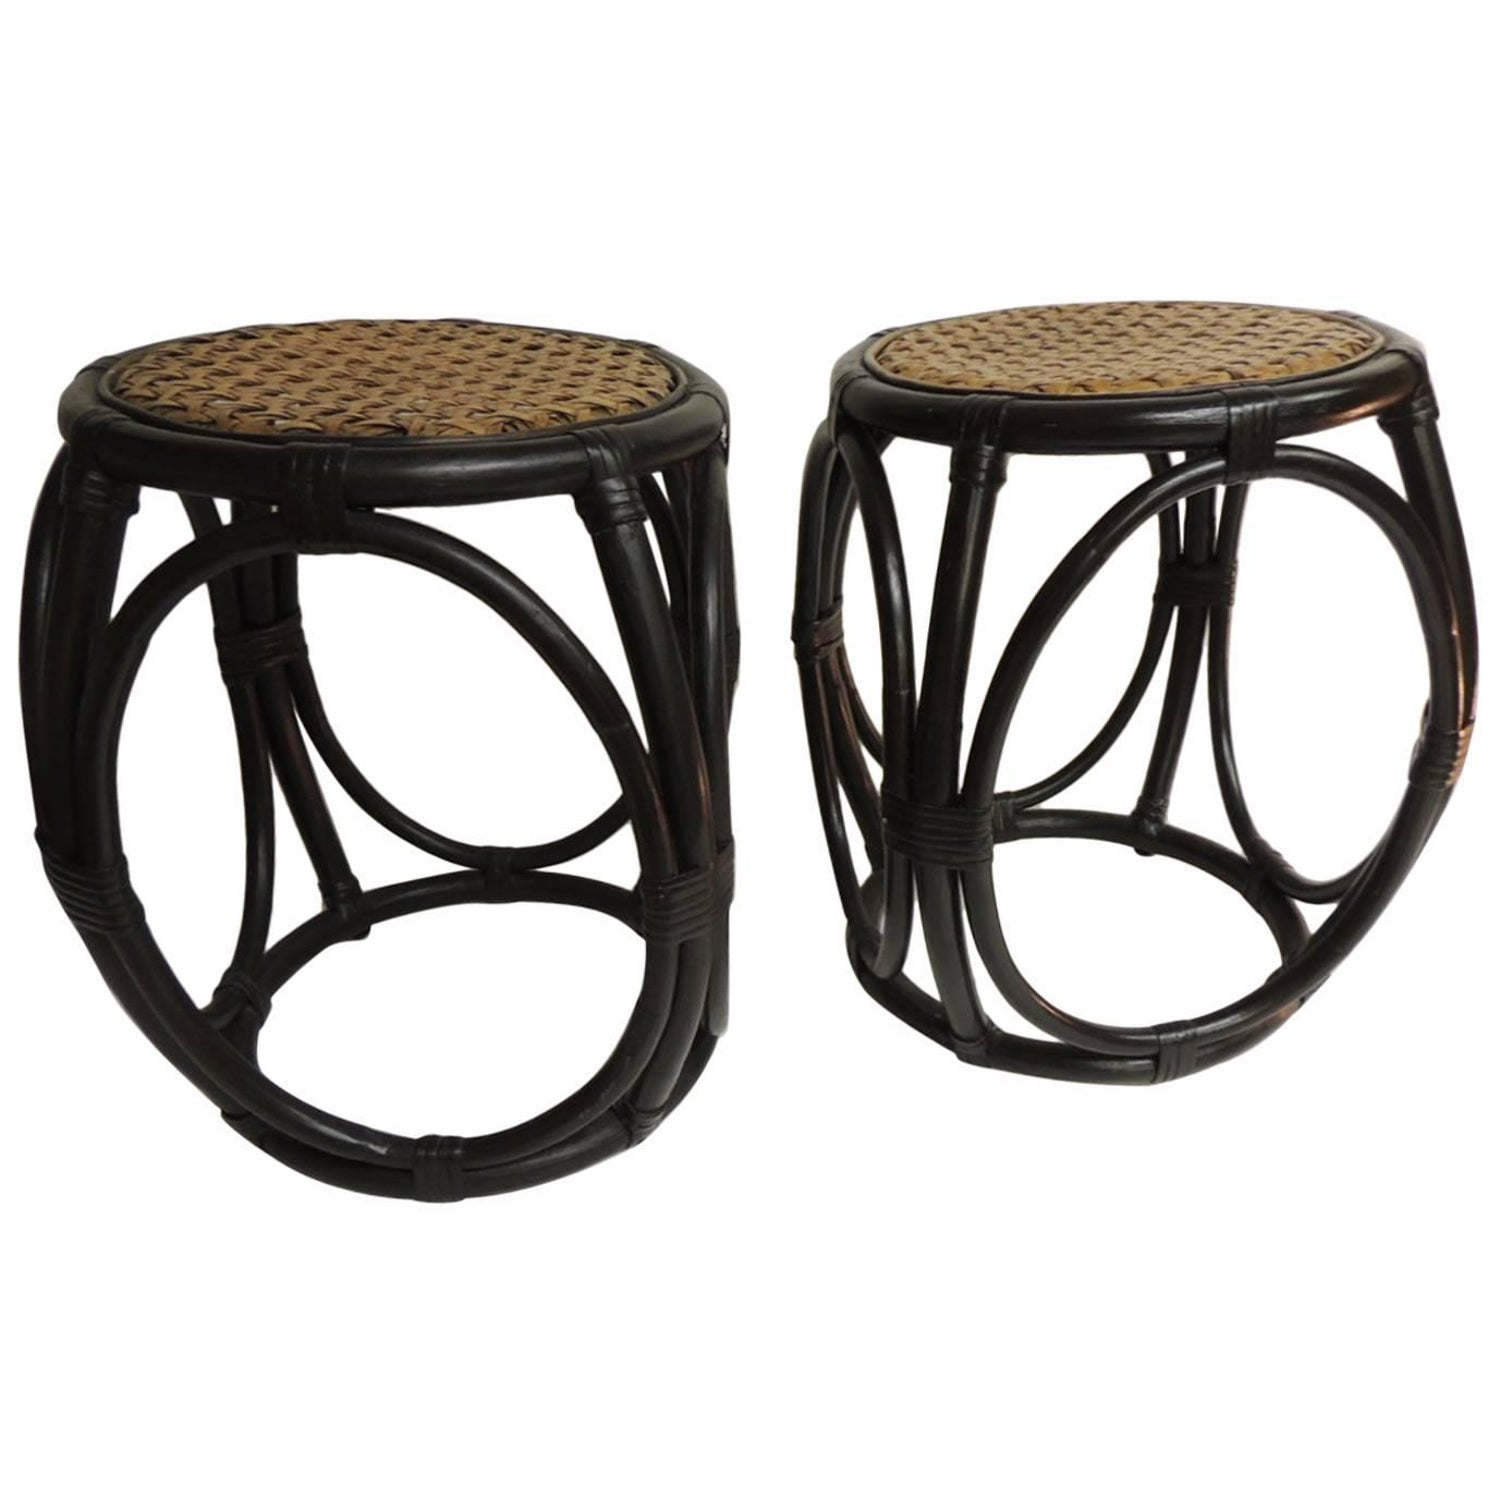 Holiday sale pair of vintage bentwood thonet style stools with wicker seats at 1stdibs